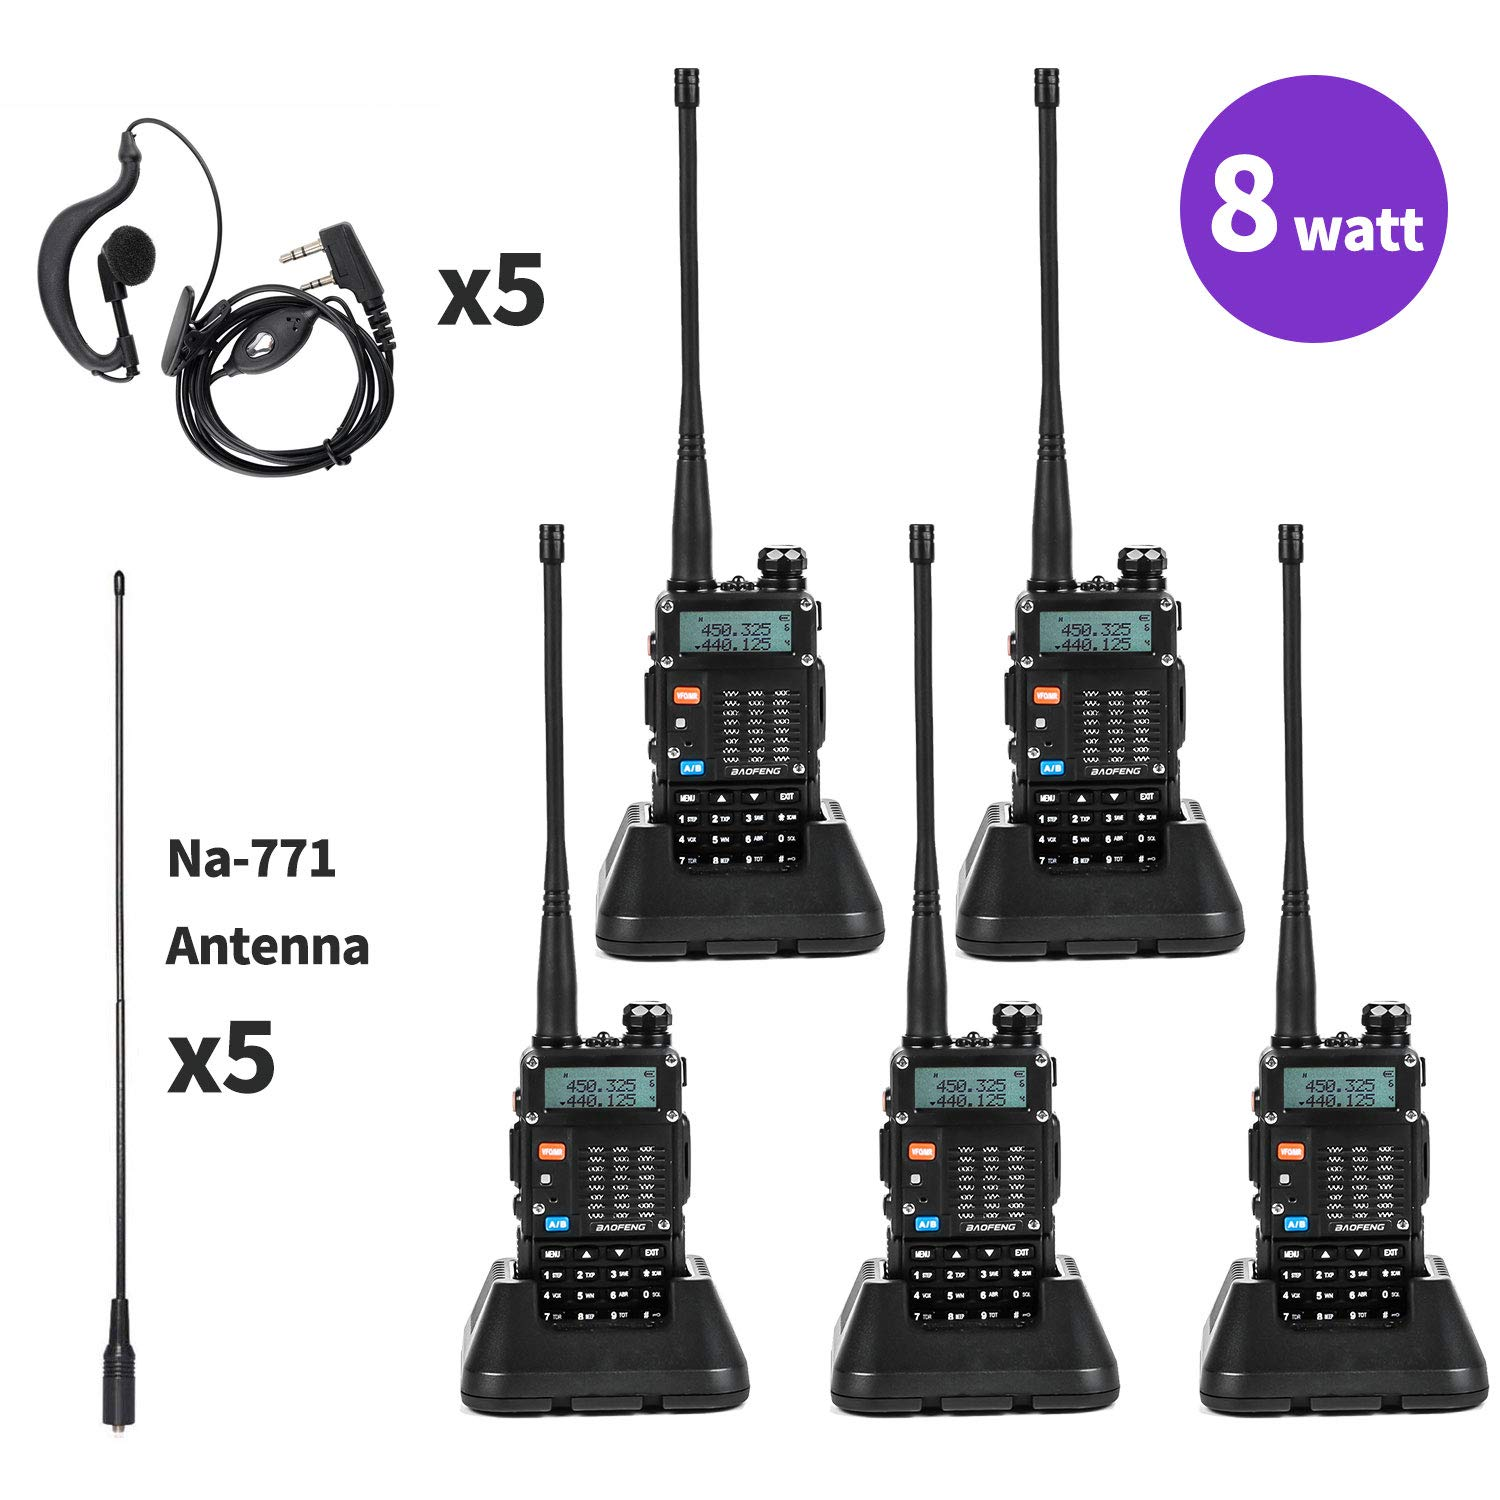 Baofeng UV-5R Radio 8Watt Ham Radio Dual Band Baofeng Walkie Talkie Baofeng BF-F8GP Two Way Radio UHF VHF Walkie Talkies with TID NA-771 Antenna 5 Pack by BaoFeng